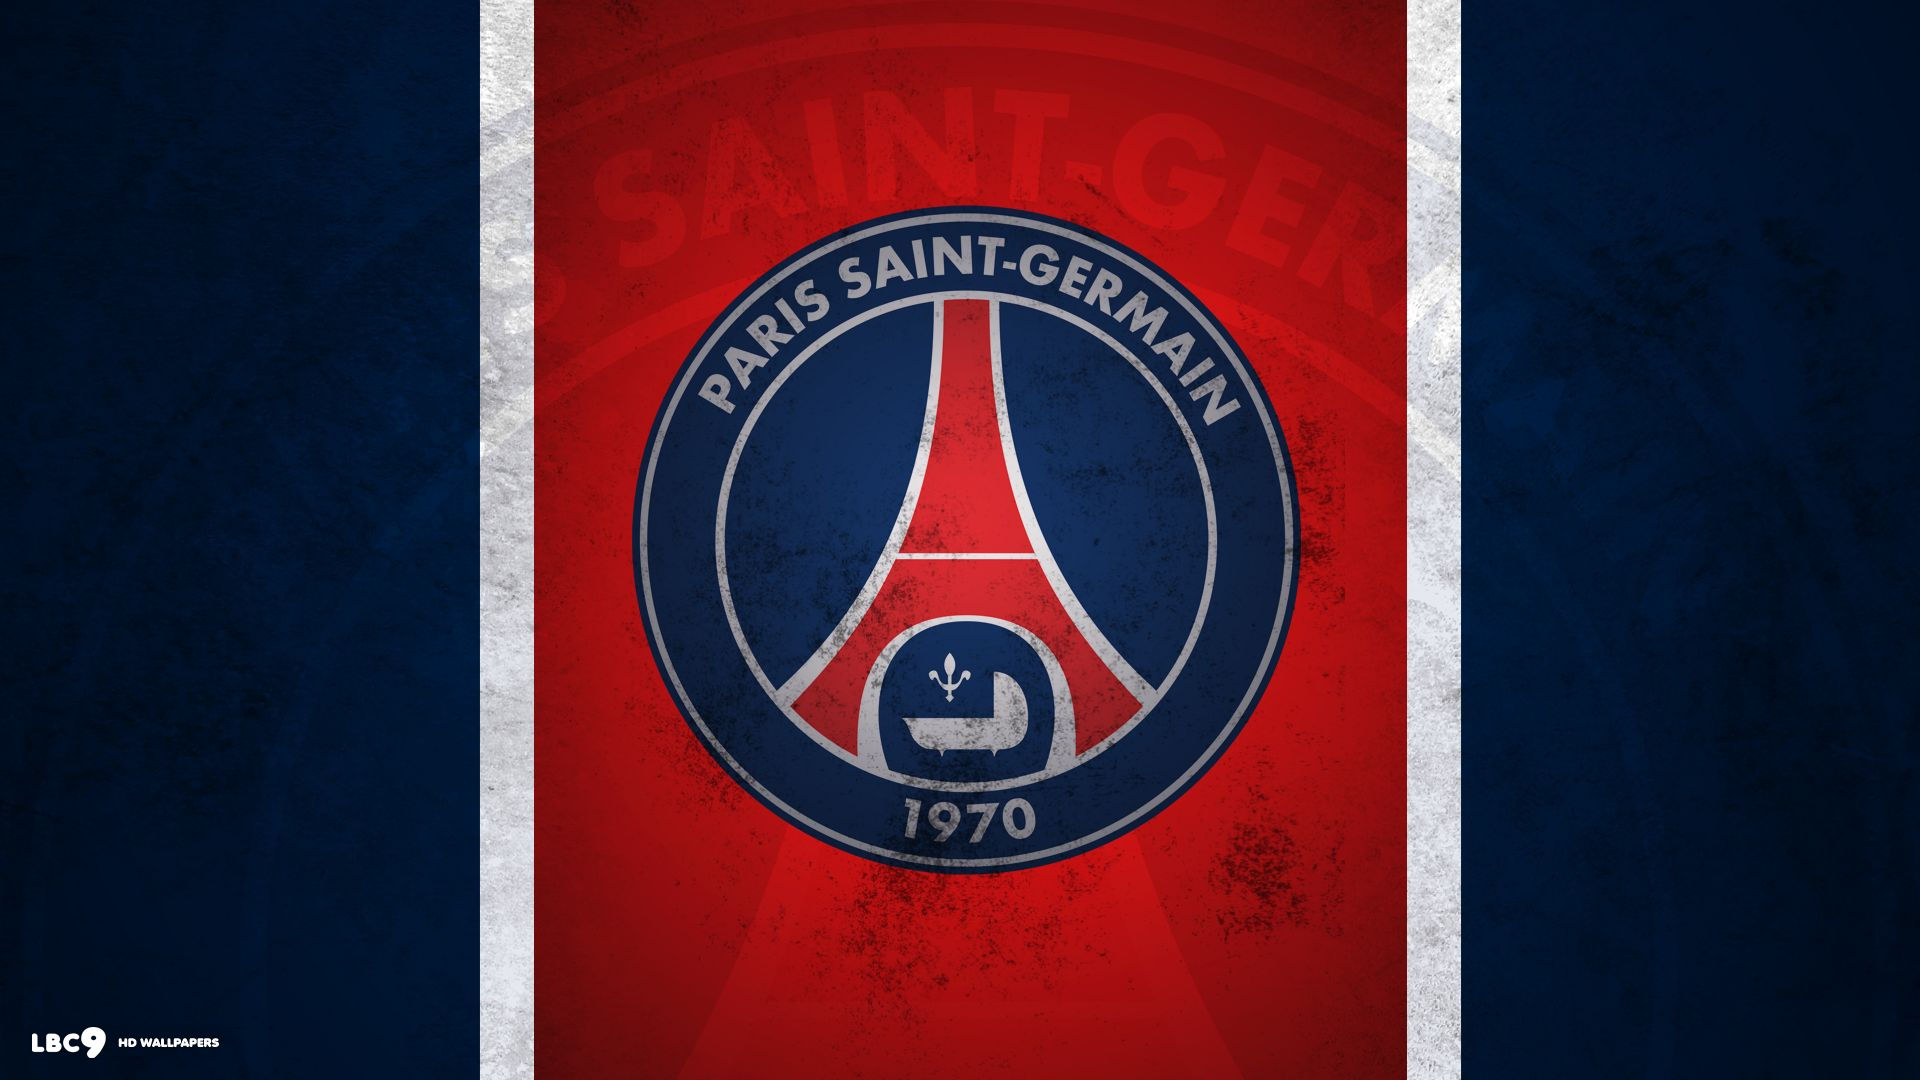 Psg wallpapers (39 Wallpapers) – Adorable Wallpapers